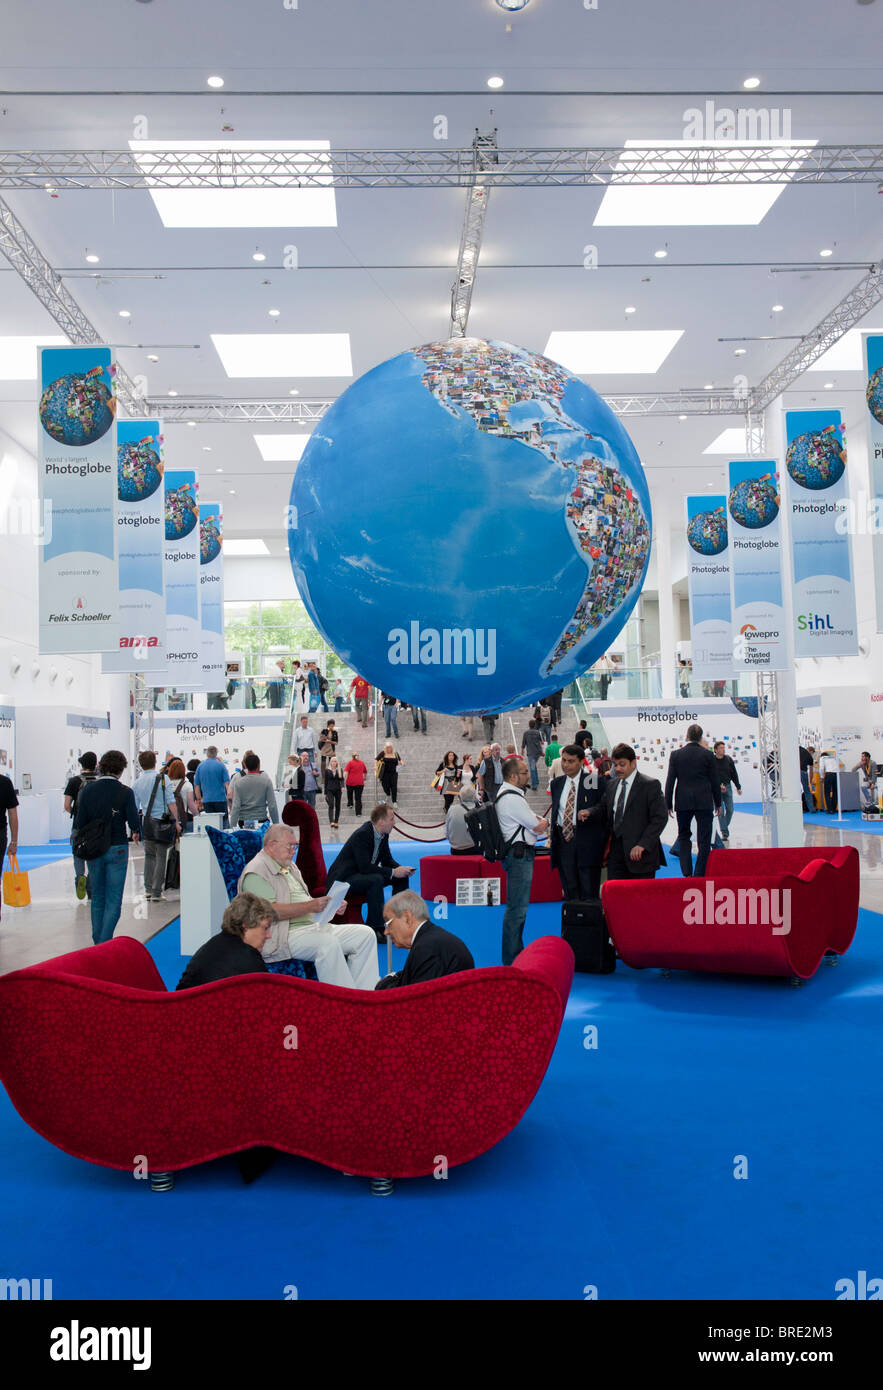 Entrance hall at Photokina digital imaging trade show in Cologne Germany - Stock Image